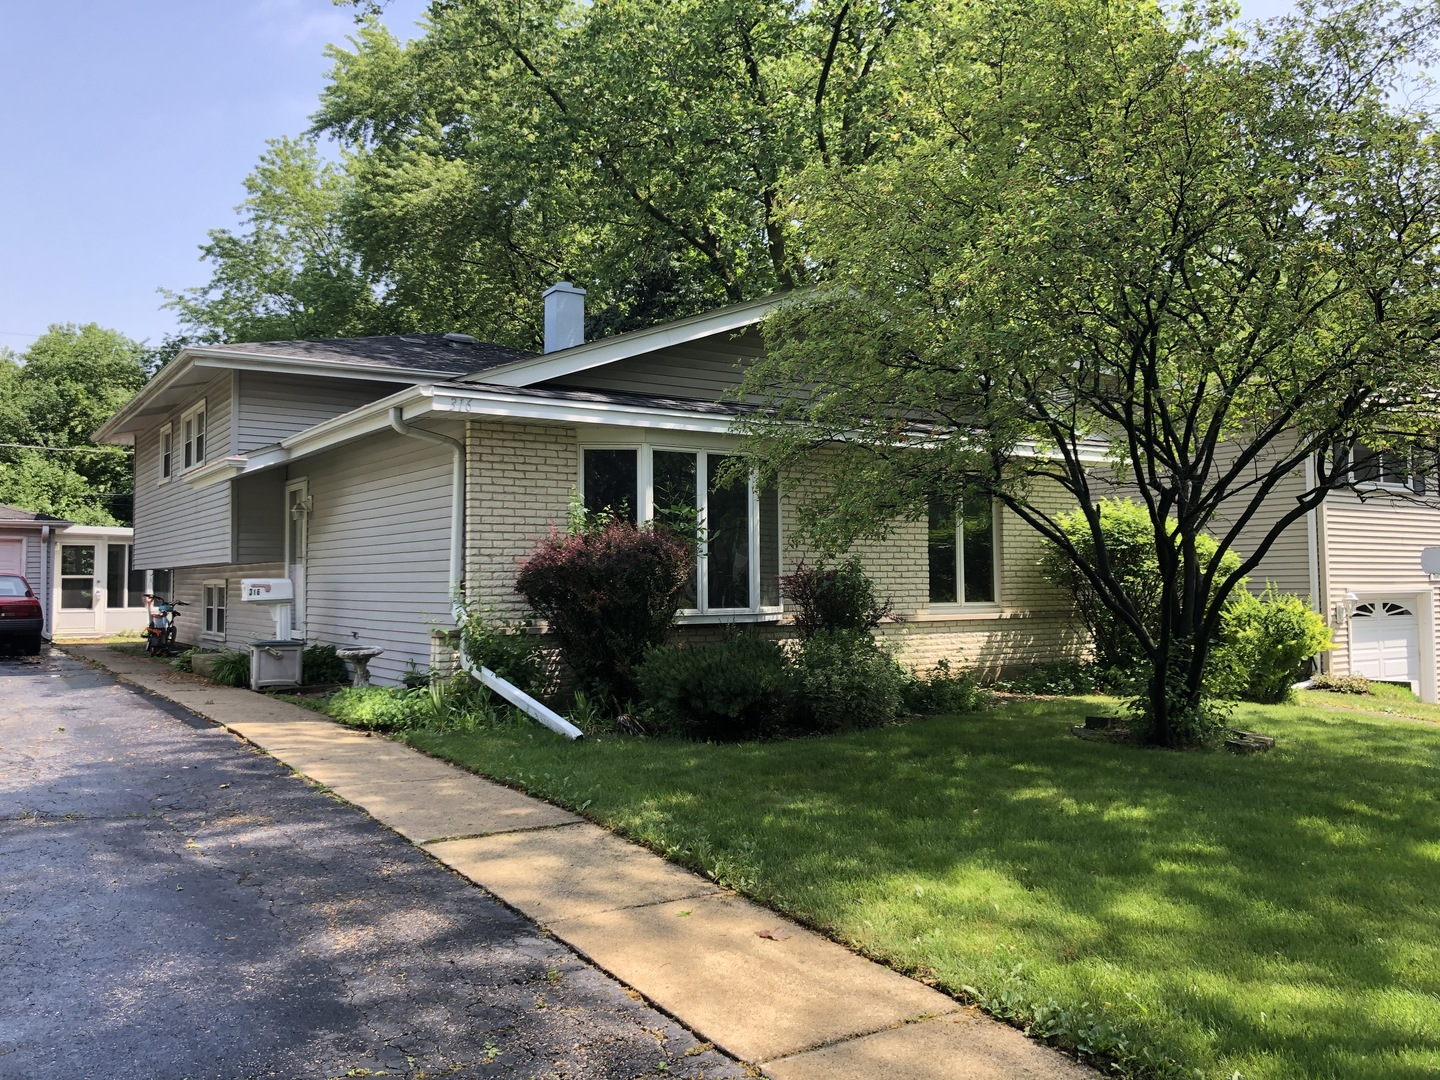 So much space, so much potential! Bring your decorating ideas to this wonderful 5 bedroom home. Updated kitchen features Corian counters, island with sitting area, and ceiling fan. Large living room has tiled entry with guest closet, bow window, hardwood floor and opens to the dining room. Large 2nd floor bedrooms have hardwood flooring and spacious updated bath. Family room has recessed lighting and walks out to back yard; carpet has been removed. 5th bedroom has partial bath attached, could be perfect guest room or in-law. Lovely screened room off garage is great for entertaining and enjoying the outdoors. New since 2014: roof, CAC, sewer line to street, water line to house, sump pump, lower level water proofing; however, home is being sold As-Is. Seller has never lived in home. Located in acclaimed Parkview Elementary School District. This is it!